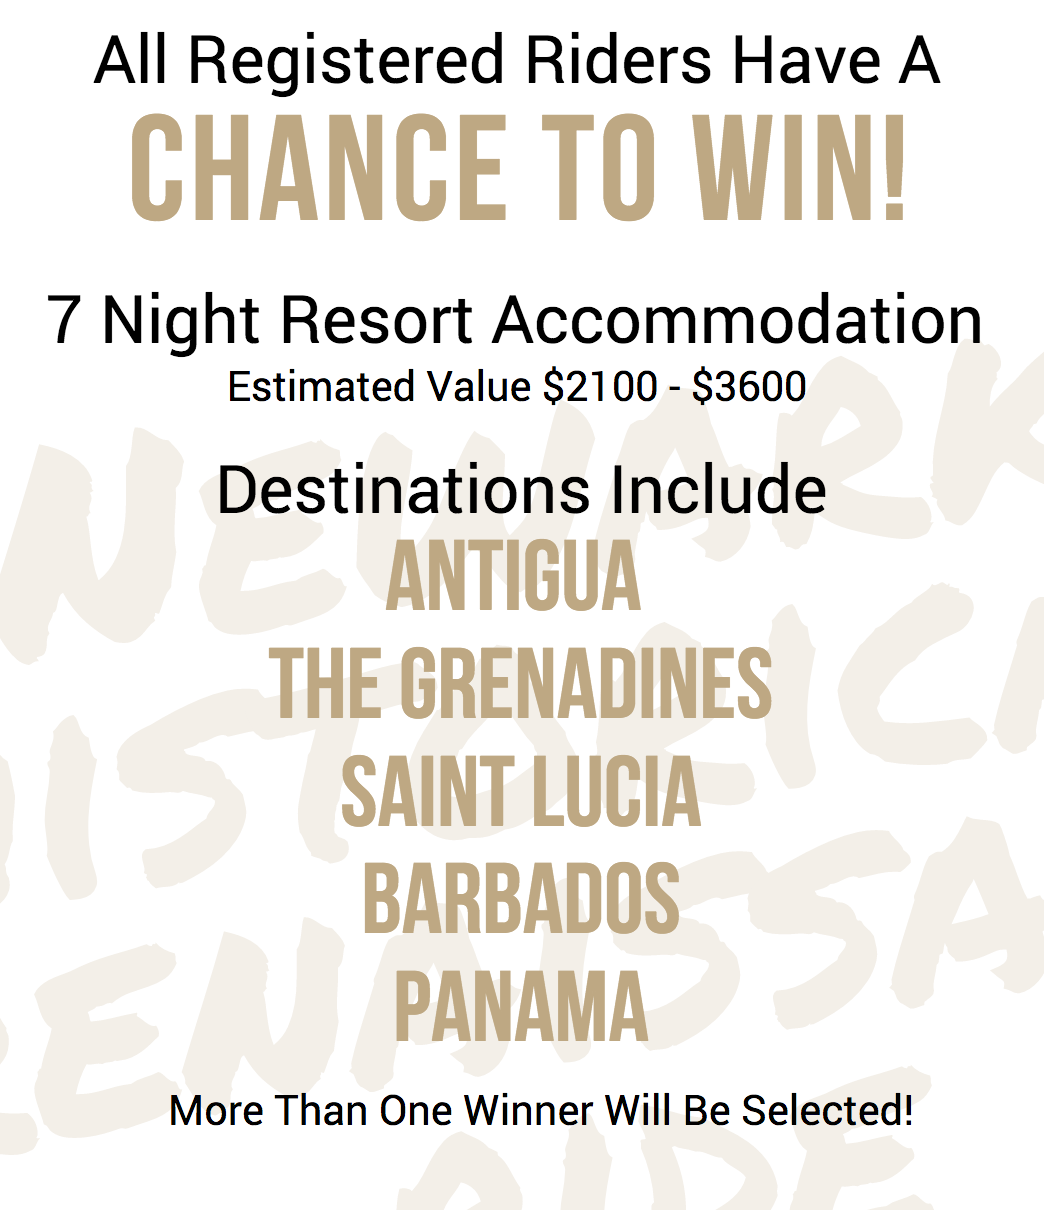 All Registered Riders Have A  CHANCE TO WIN!  7 Night Resort 🌴Accommodation (Estimated Value $2100 - $3600) Destinations Include  Antigua    The Grenadines   Saint Lucia    Barbados   Panama  More Than One Winner Will Be Selected!